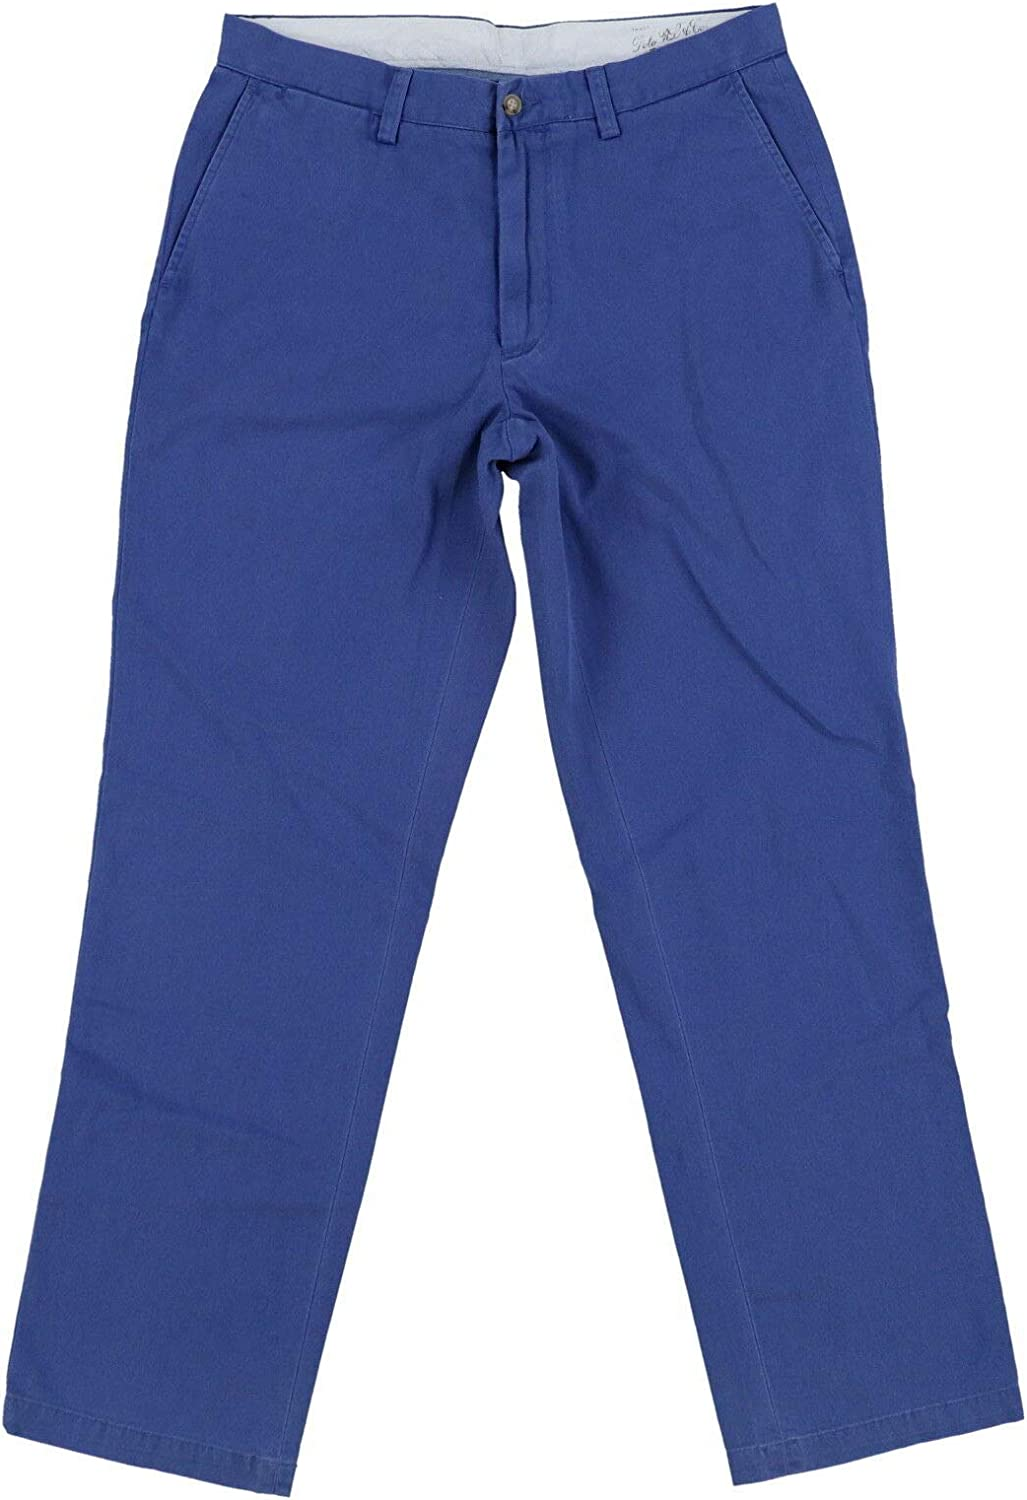 Polo Ralph Lauren Mens Flat Front Classic Fit Chino Pants